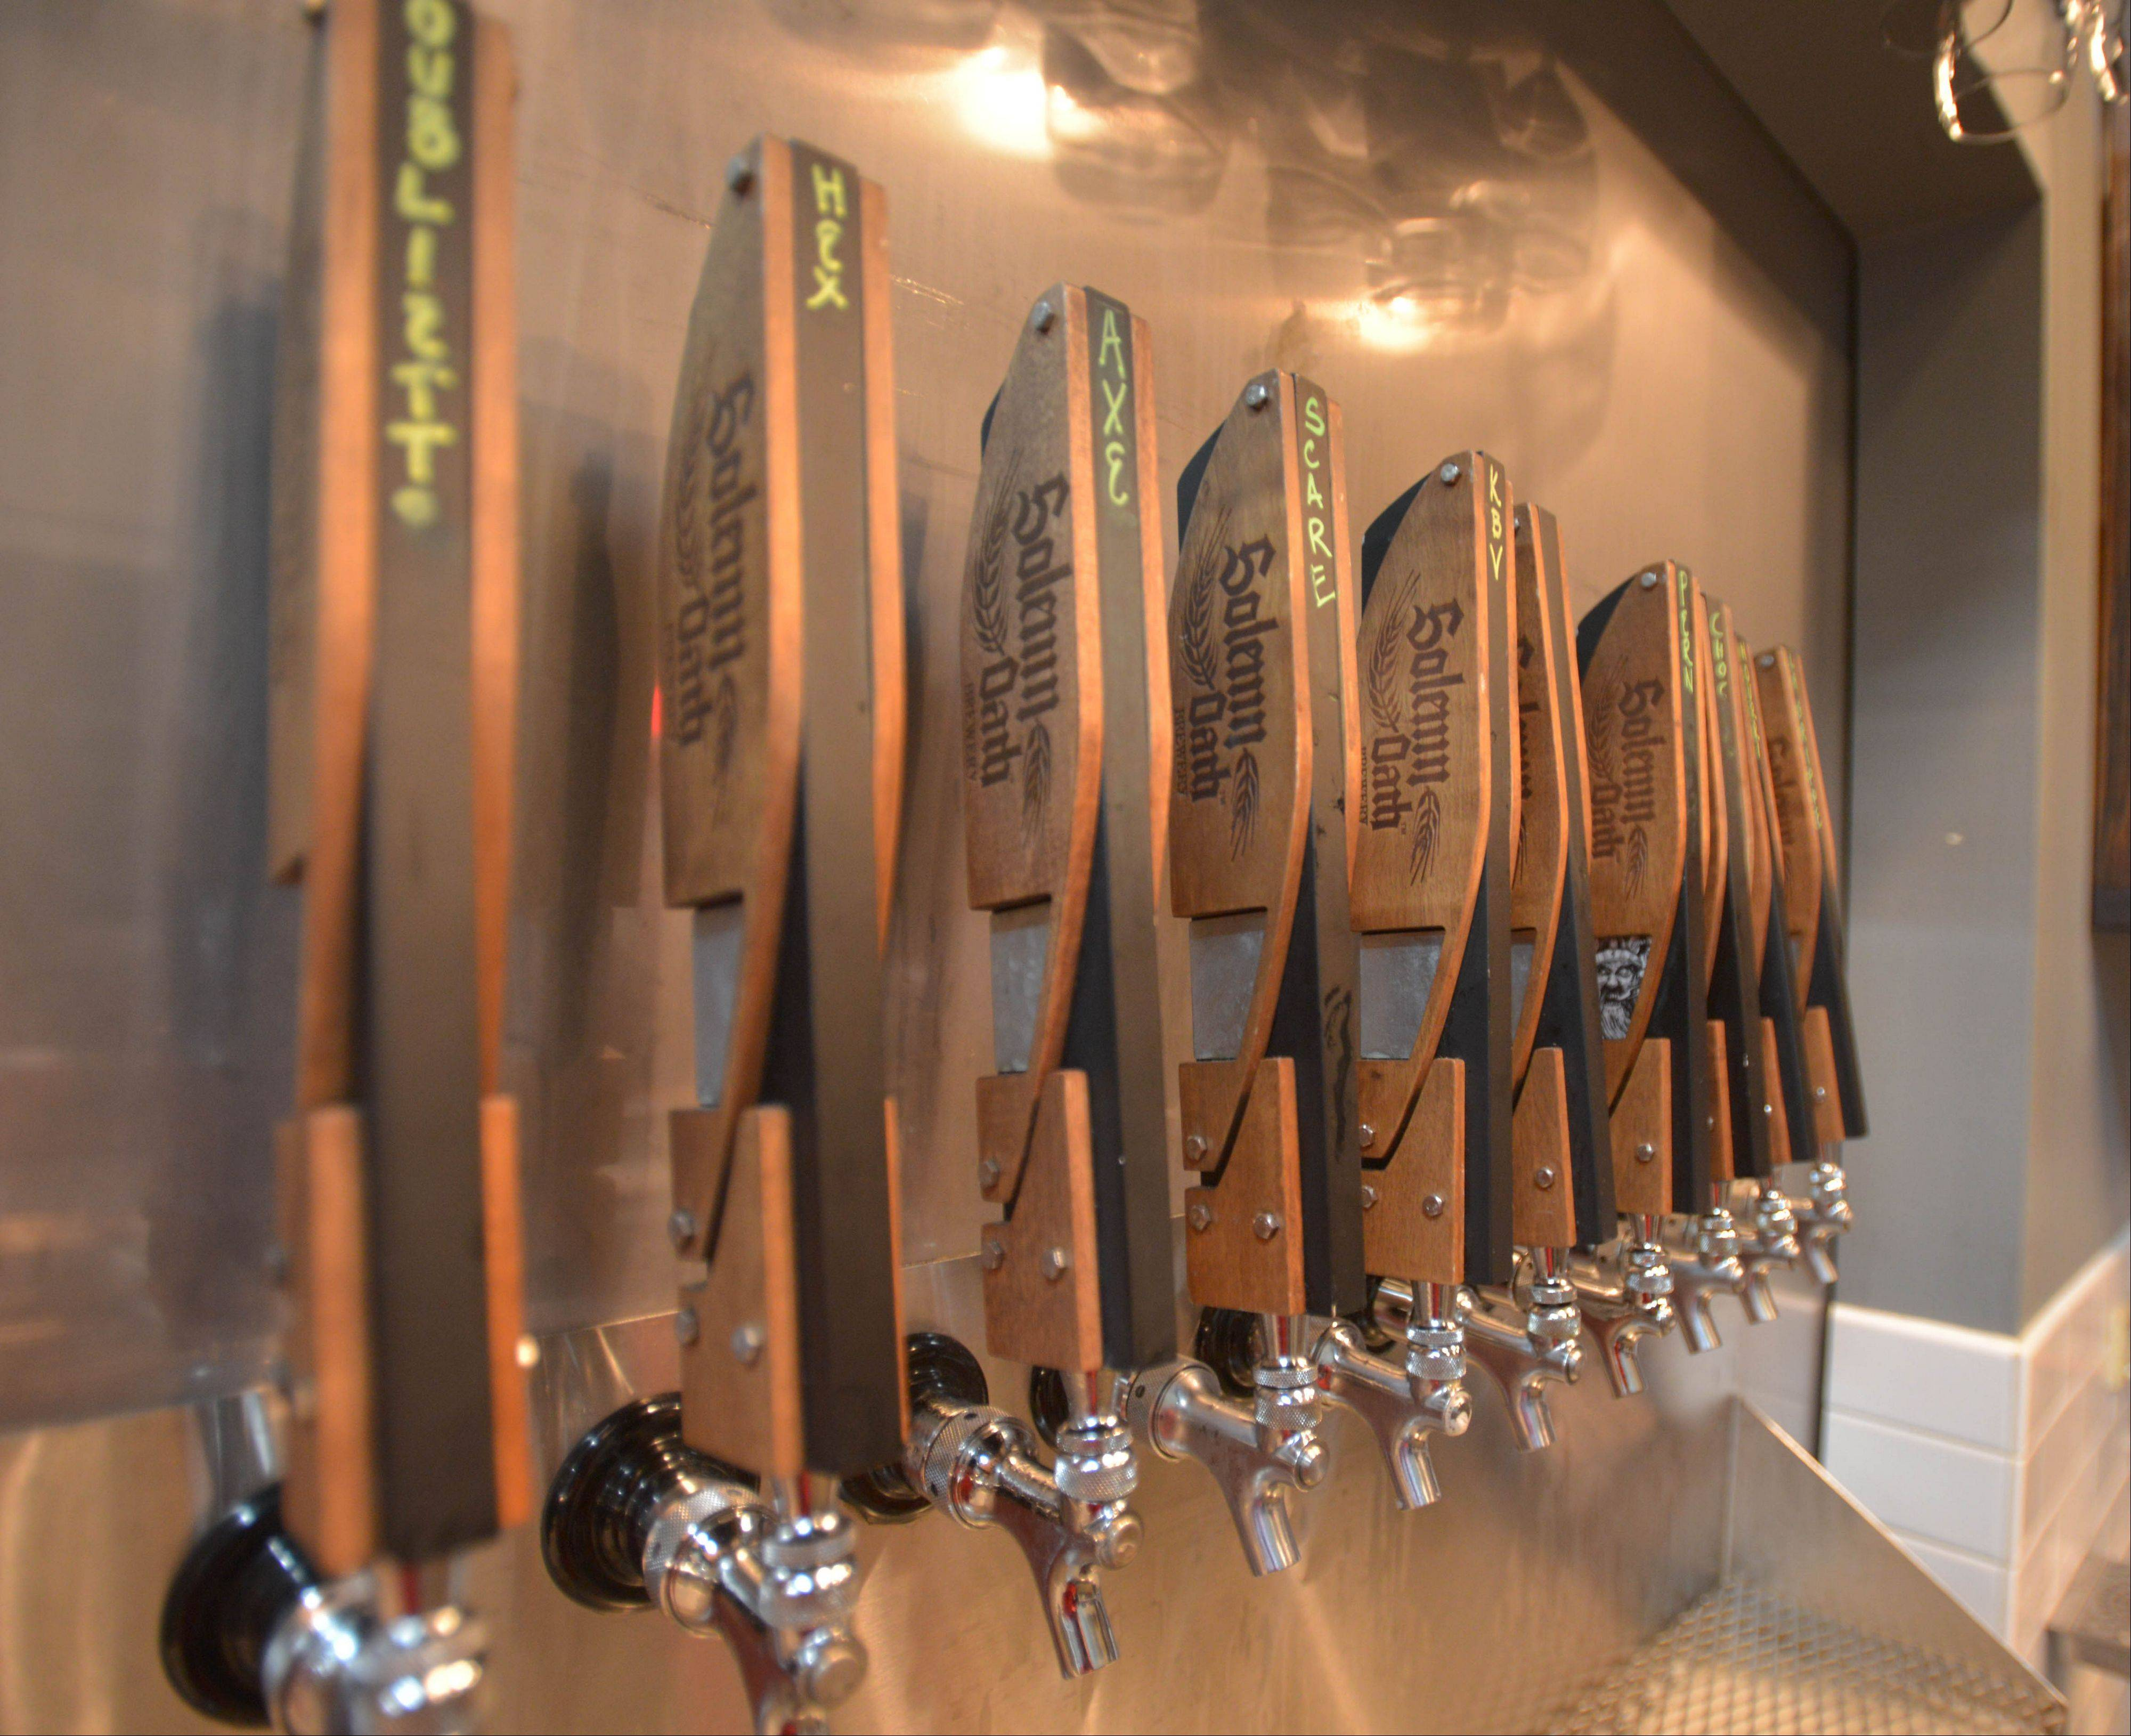 Beer fans will find a rotating selection at Solemn Oath Brewery's taproom in Naperville.